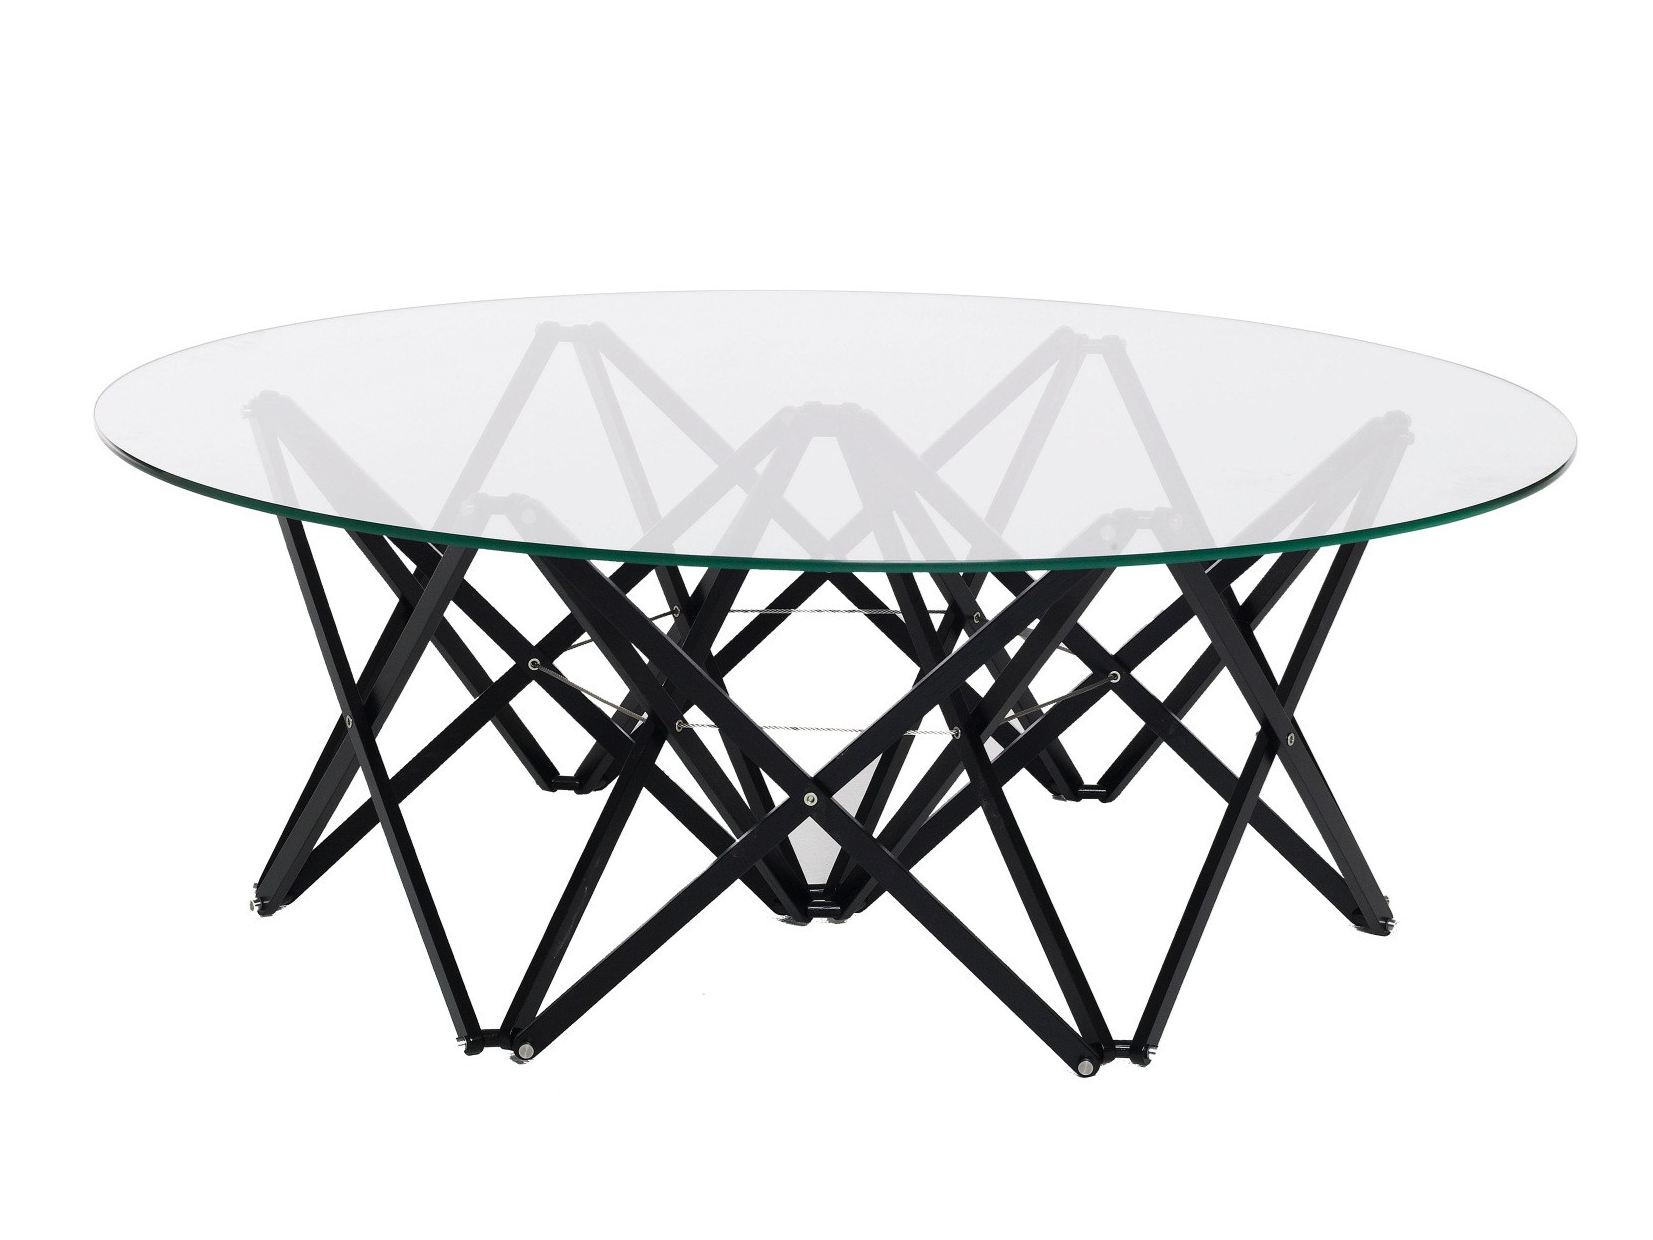 Low round glass coffee table NEWTON By Karl Andersson design Dan